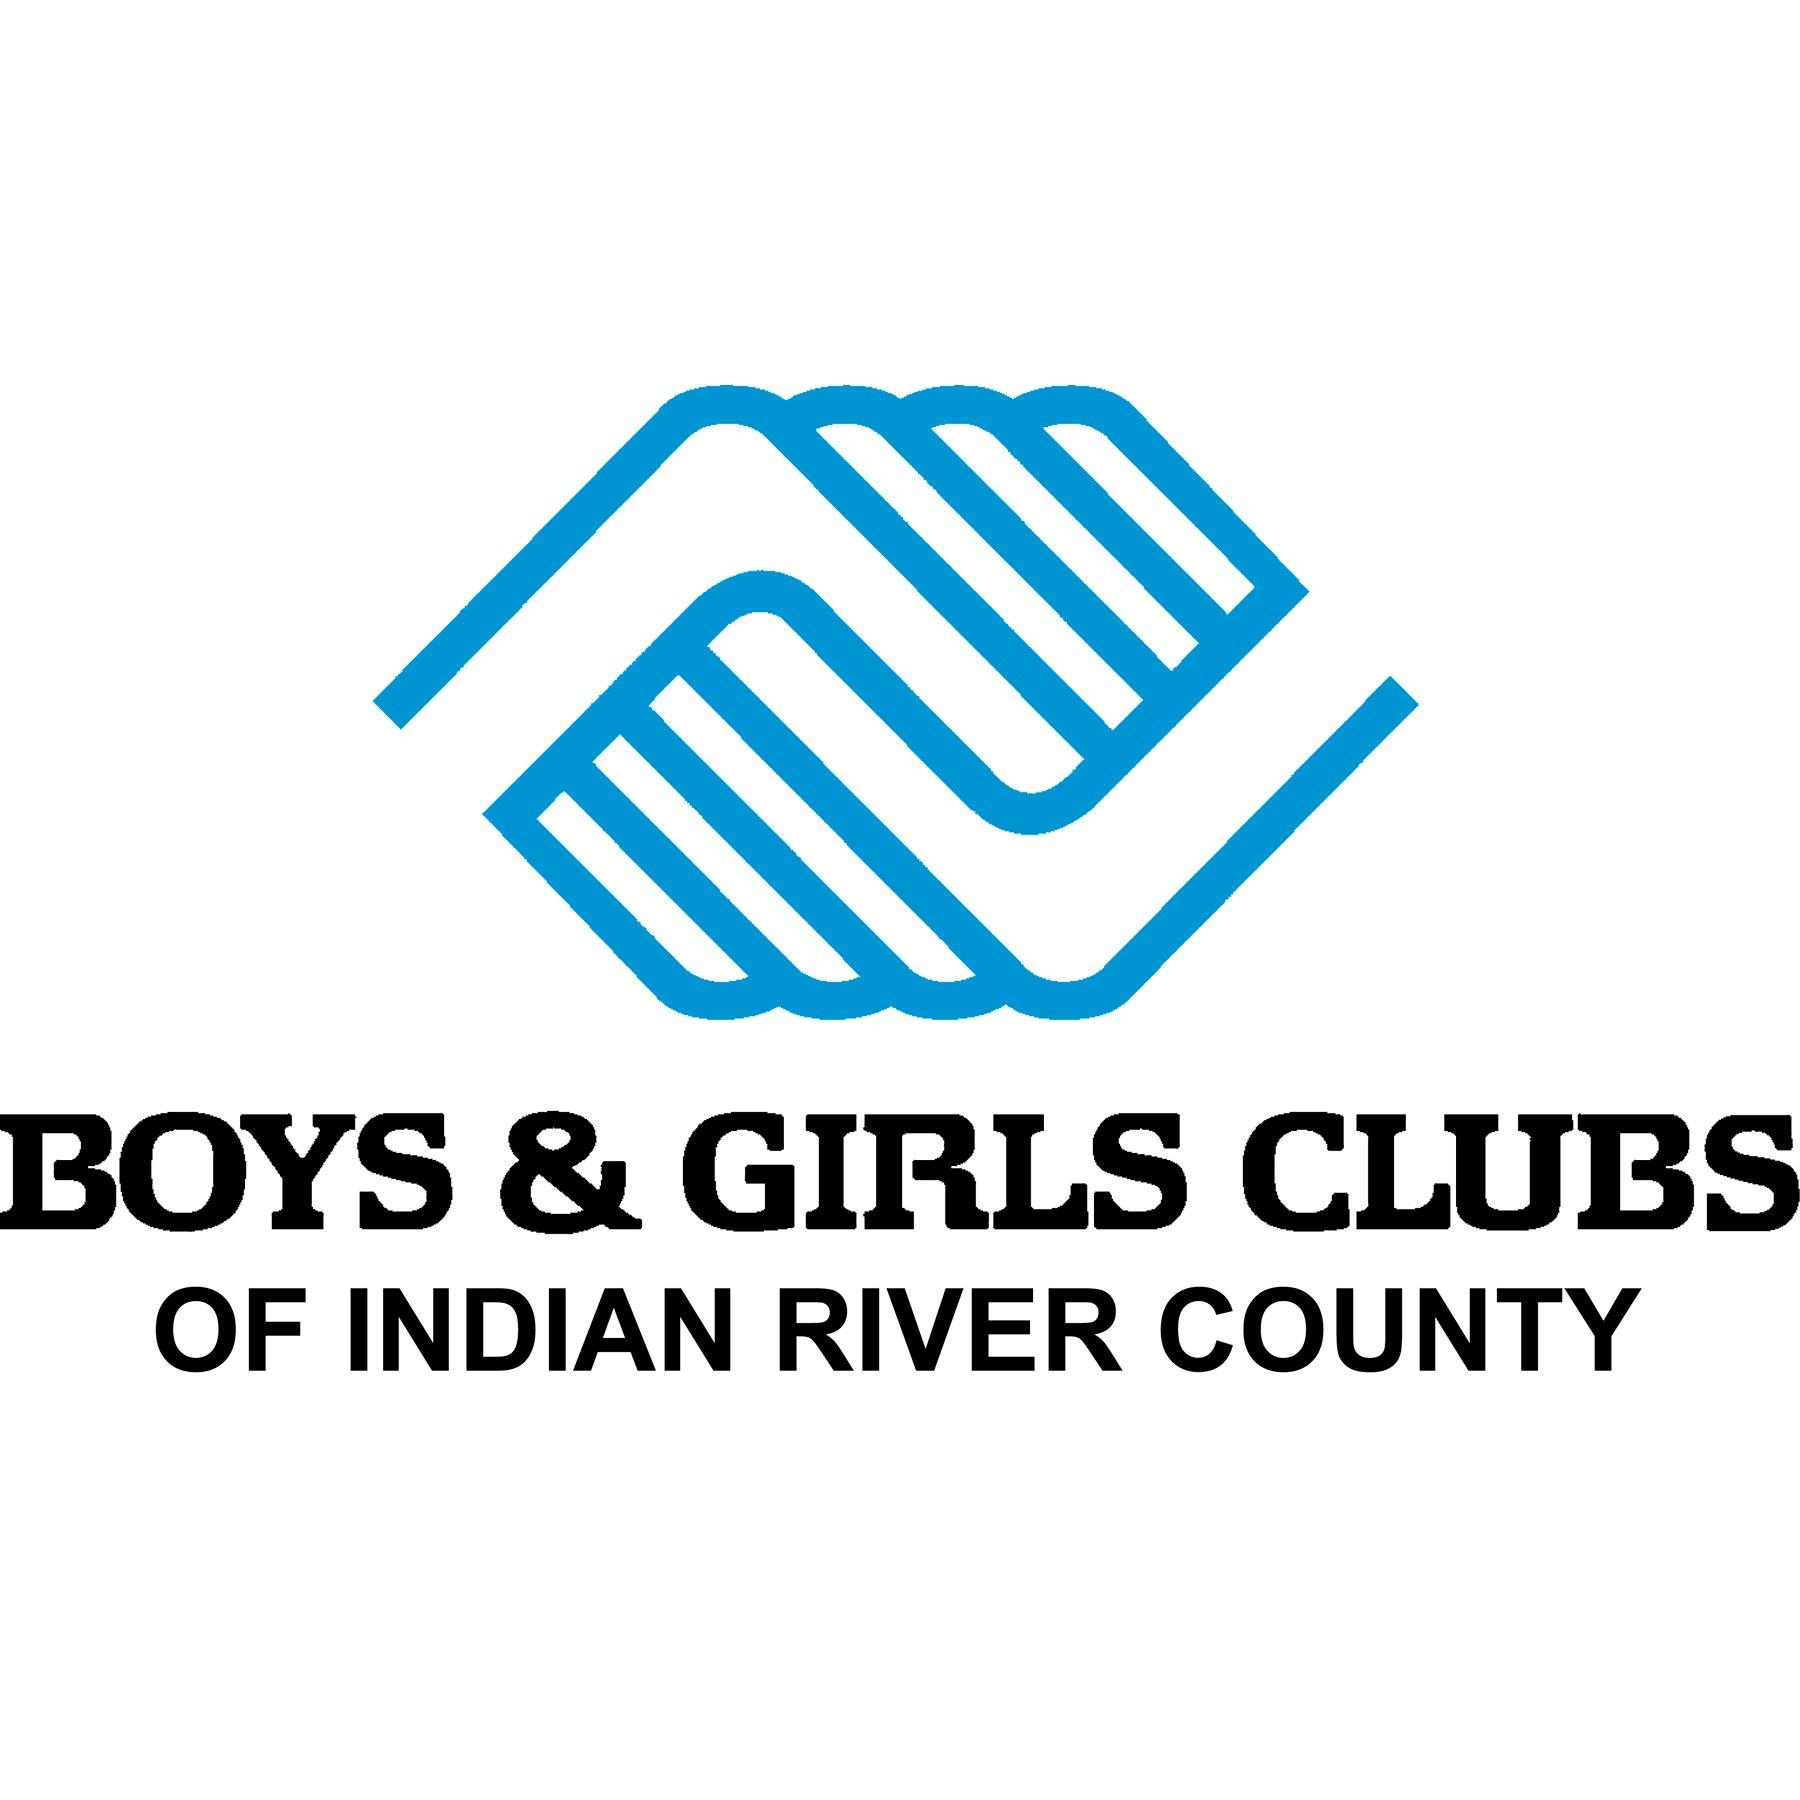 Boys & Girls Clubs of Indian River County - Vero Beach